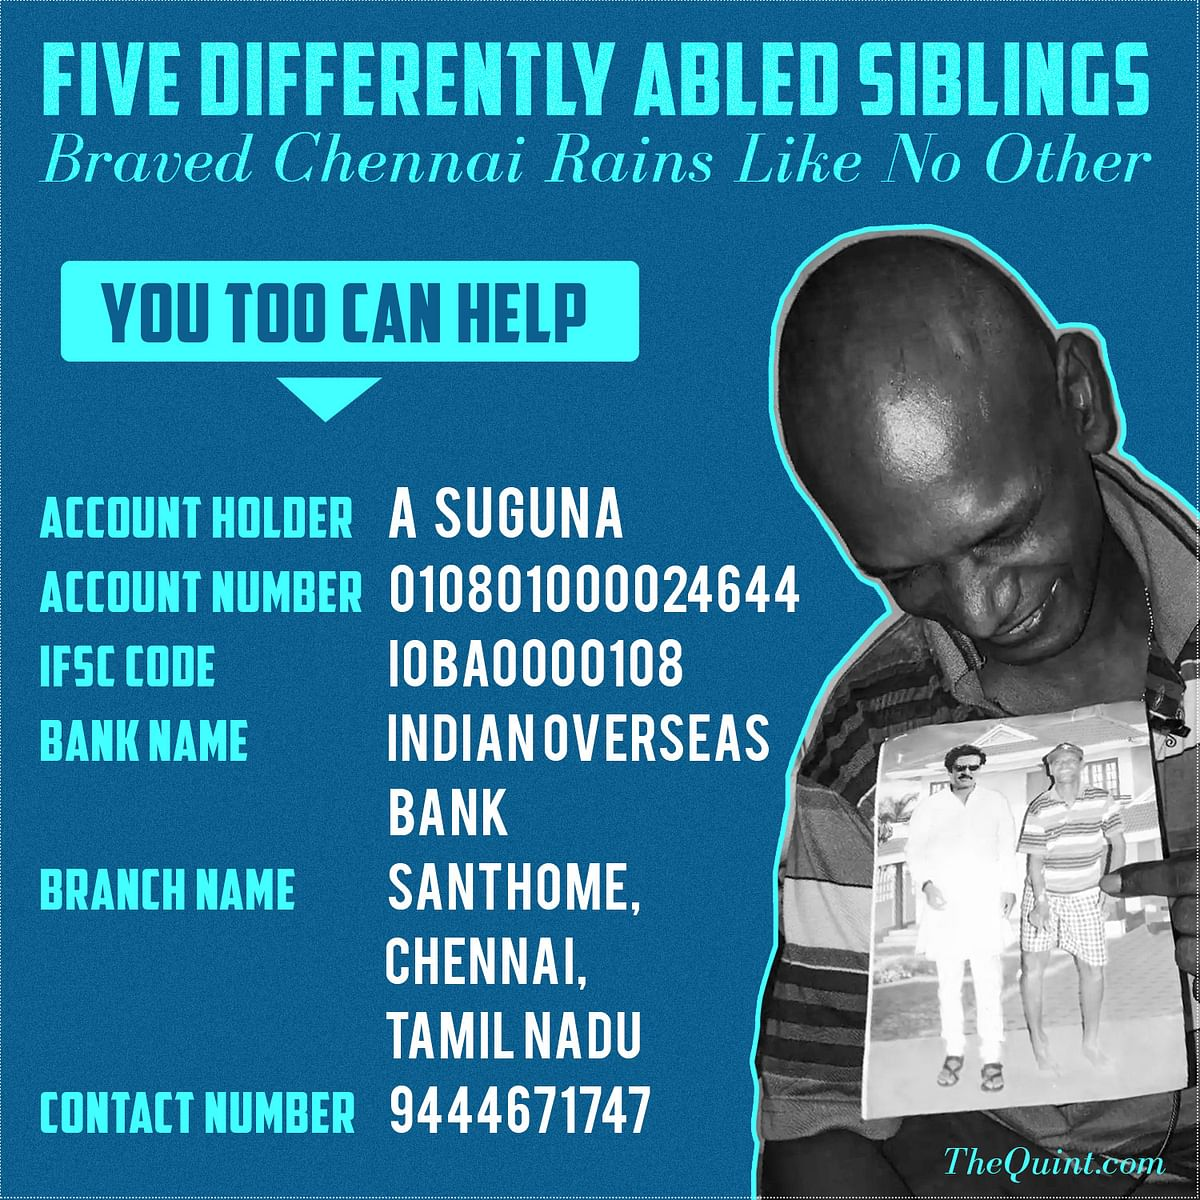 Five Differently Abled Siblings Braved Chennai Rains Like No Other